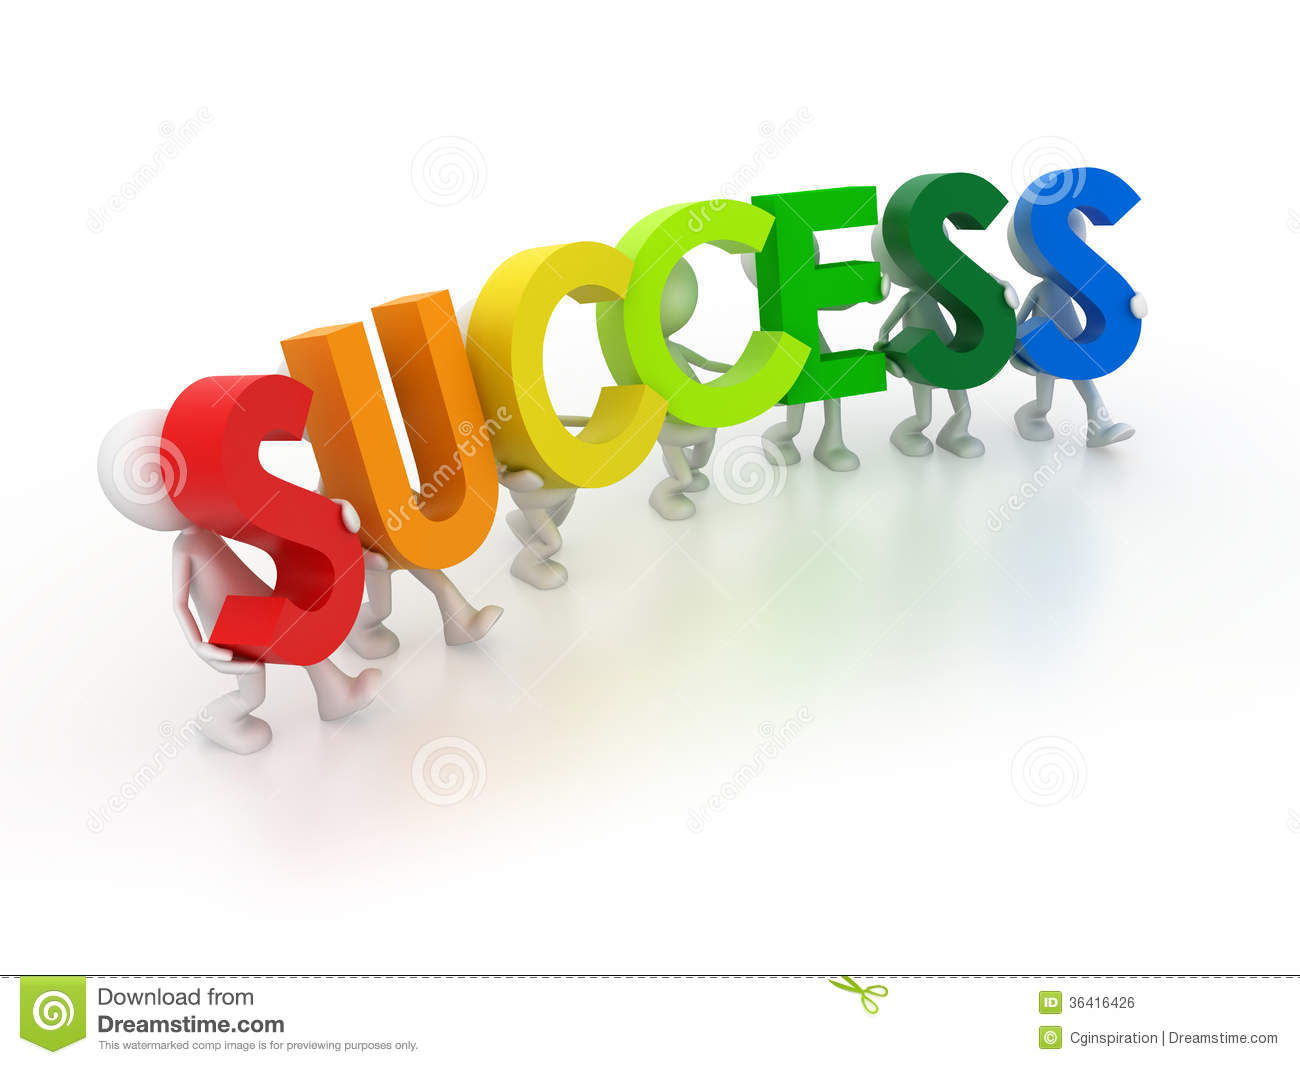 Success Team Royalty Free Stock Image Im-Success Team Royalty Free Stock Image Image 36416426-10